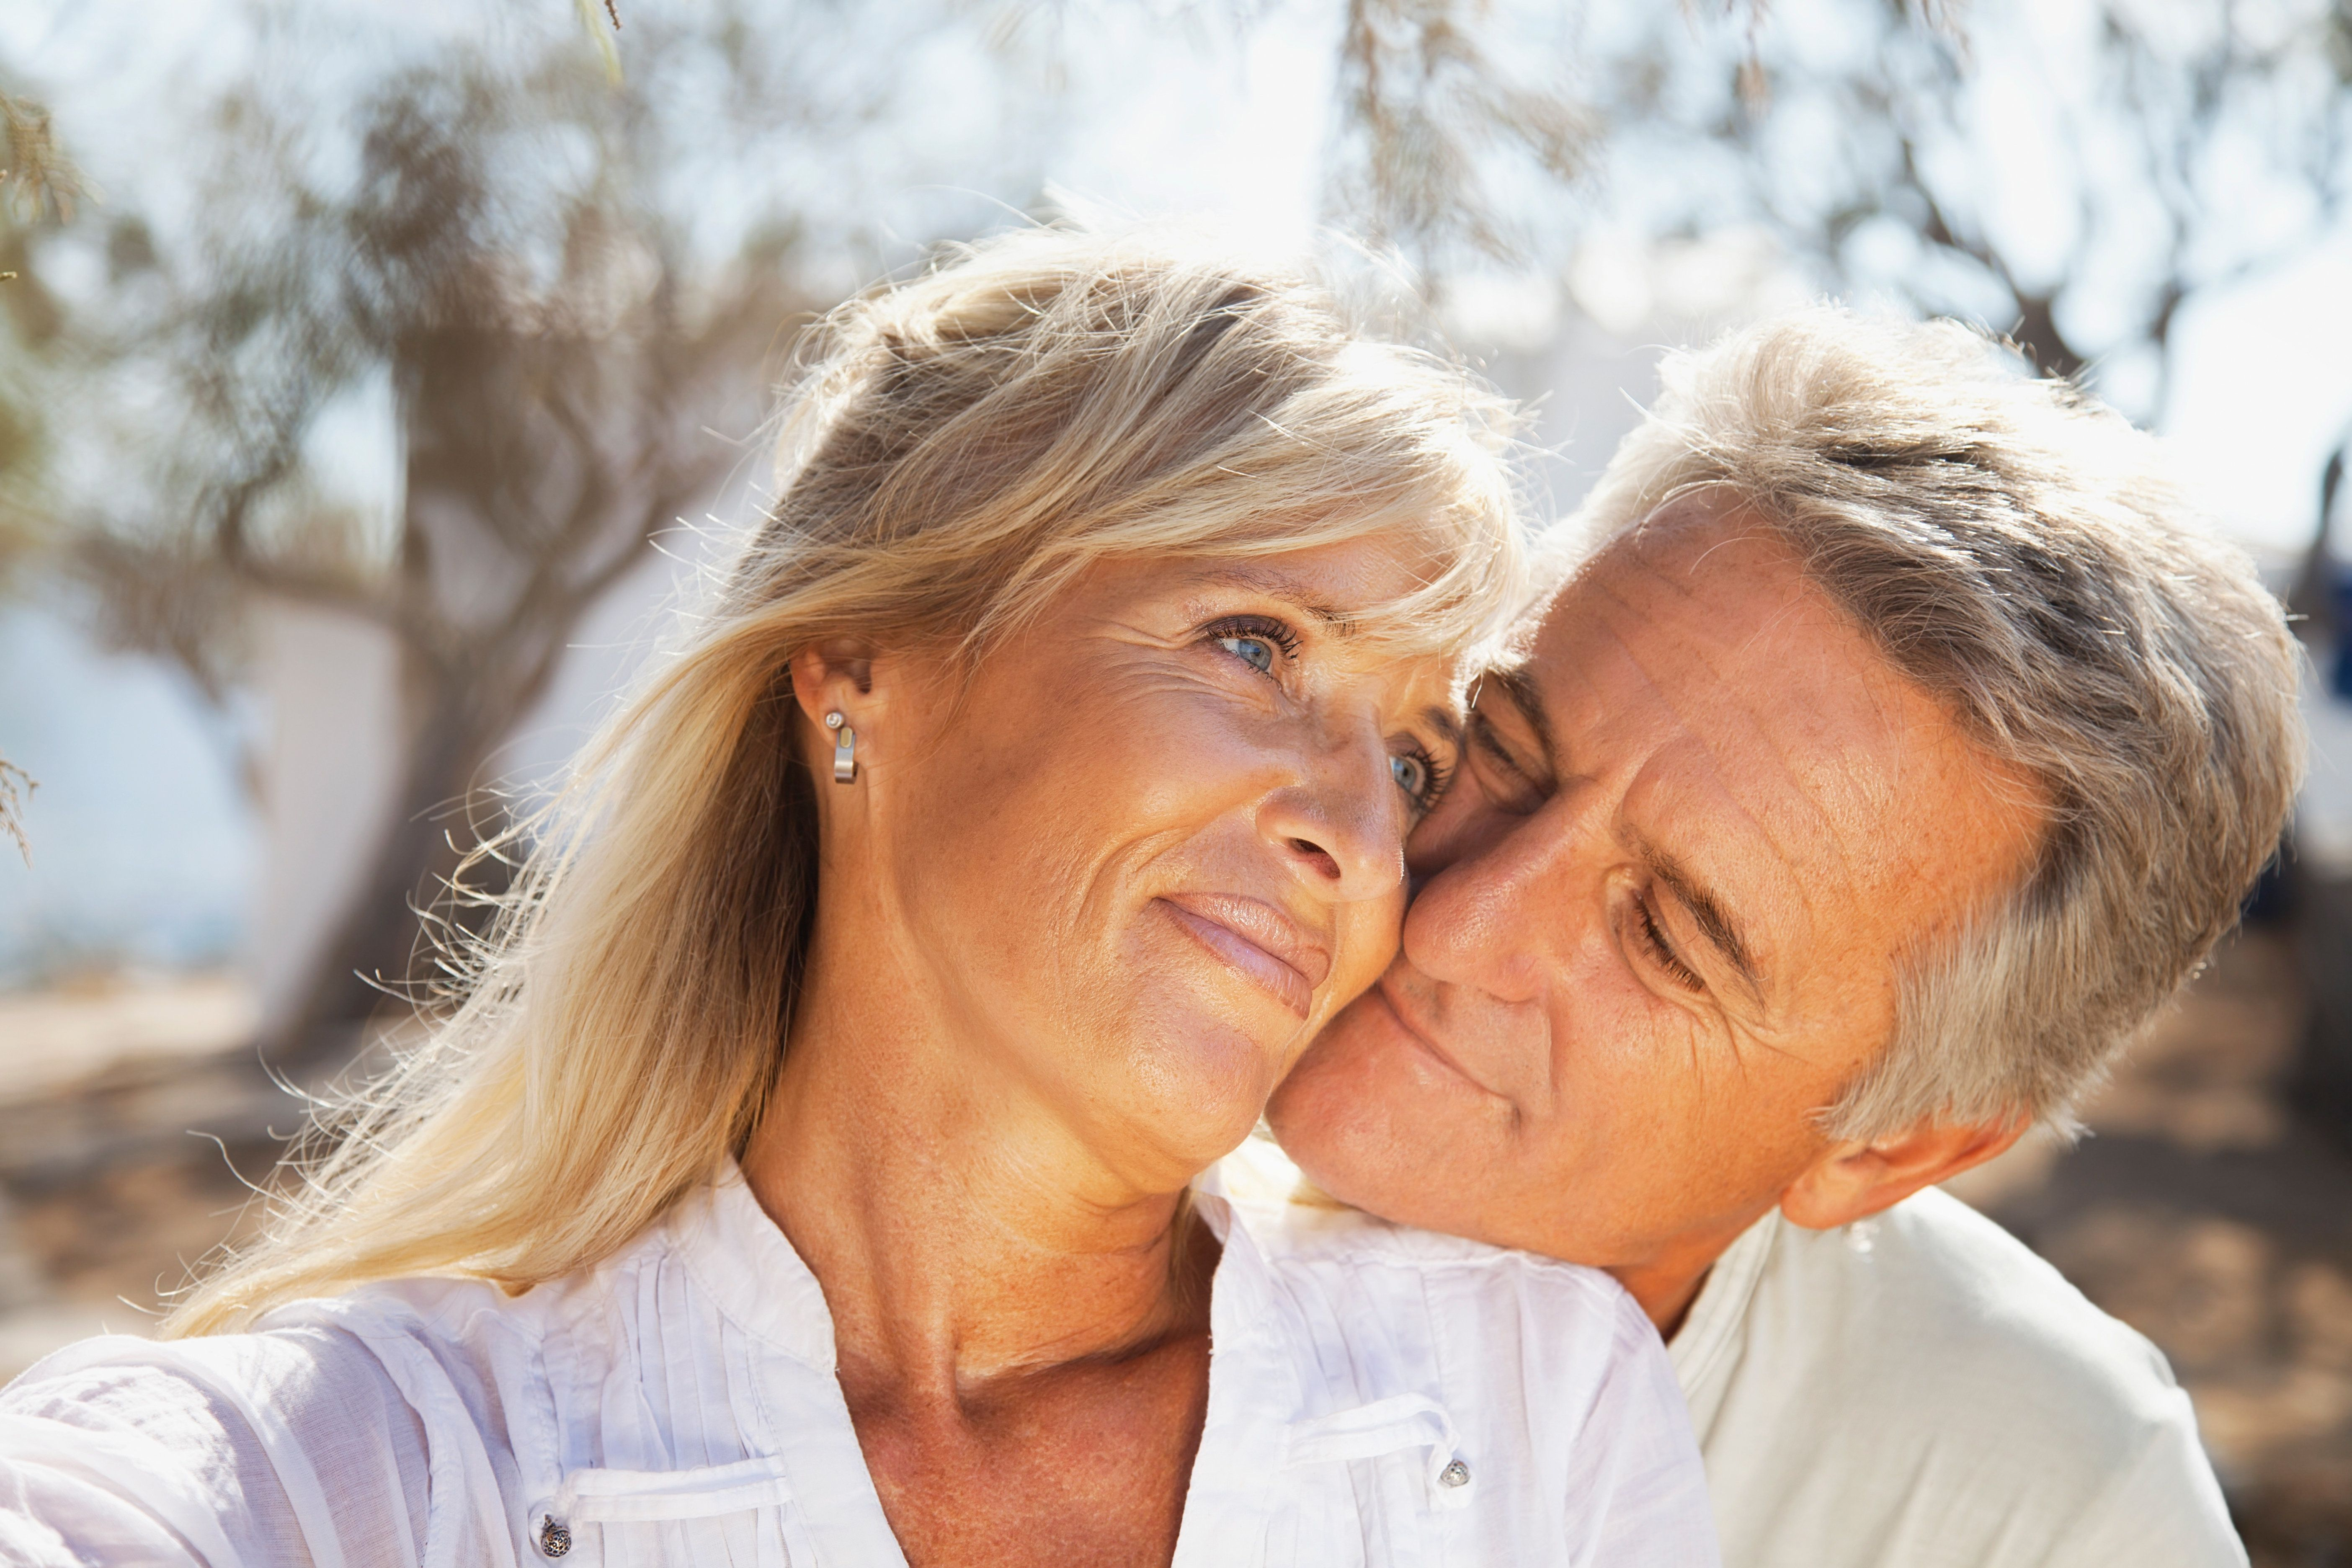 How often do married couples over 60 make love